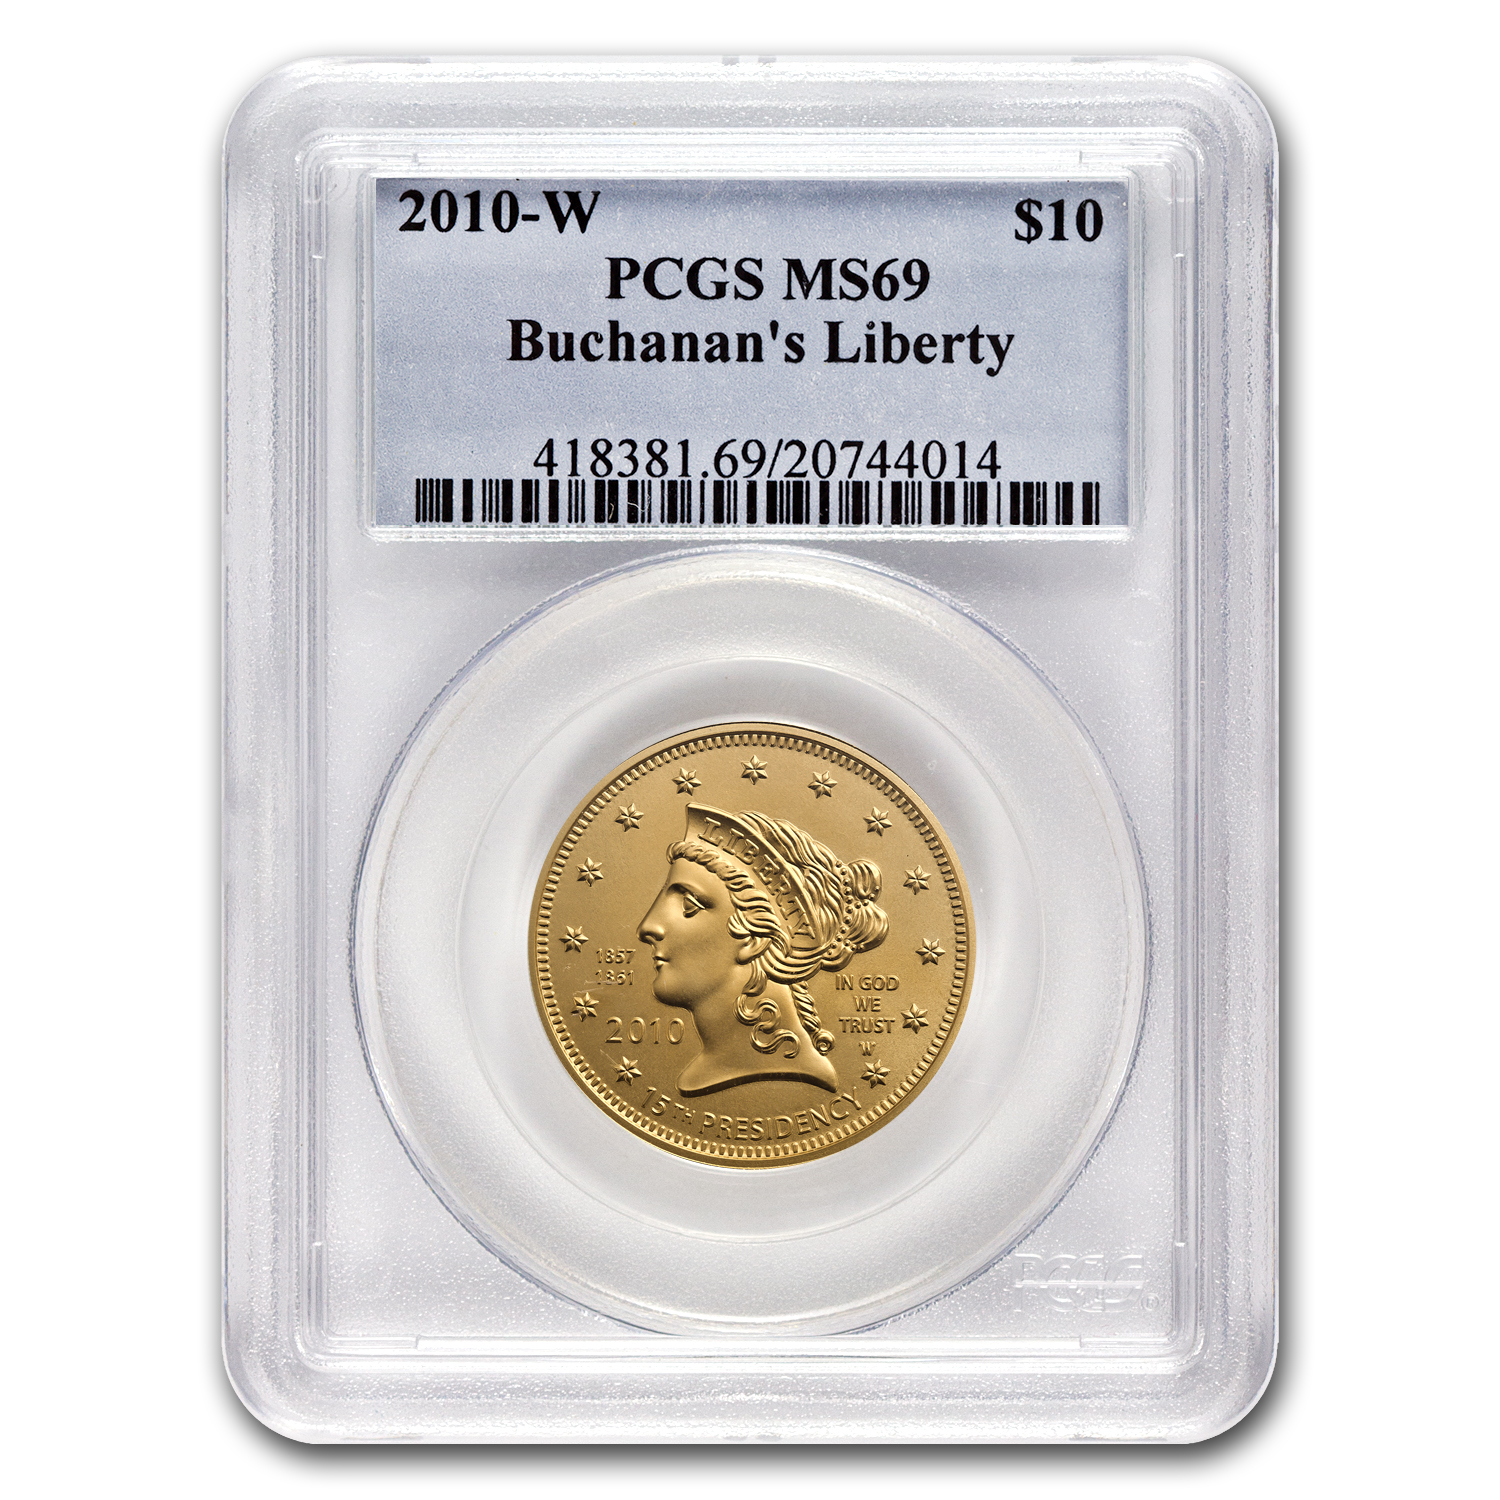 2010-W 1/2 oz Gold Buchanan's Liberty MS-69 PCGS